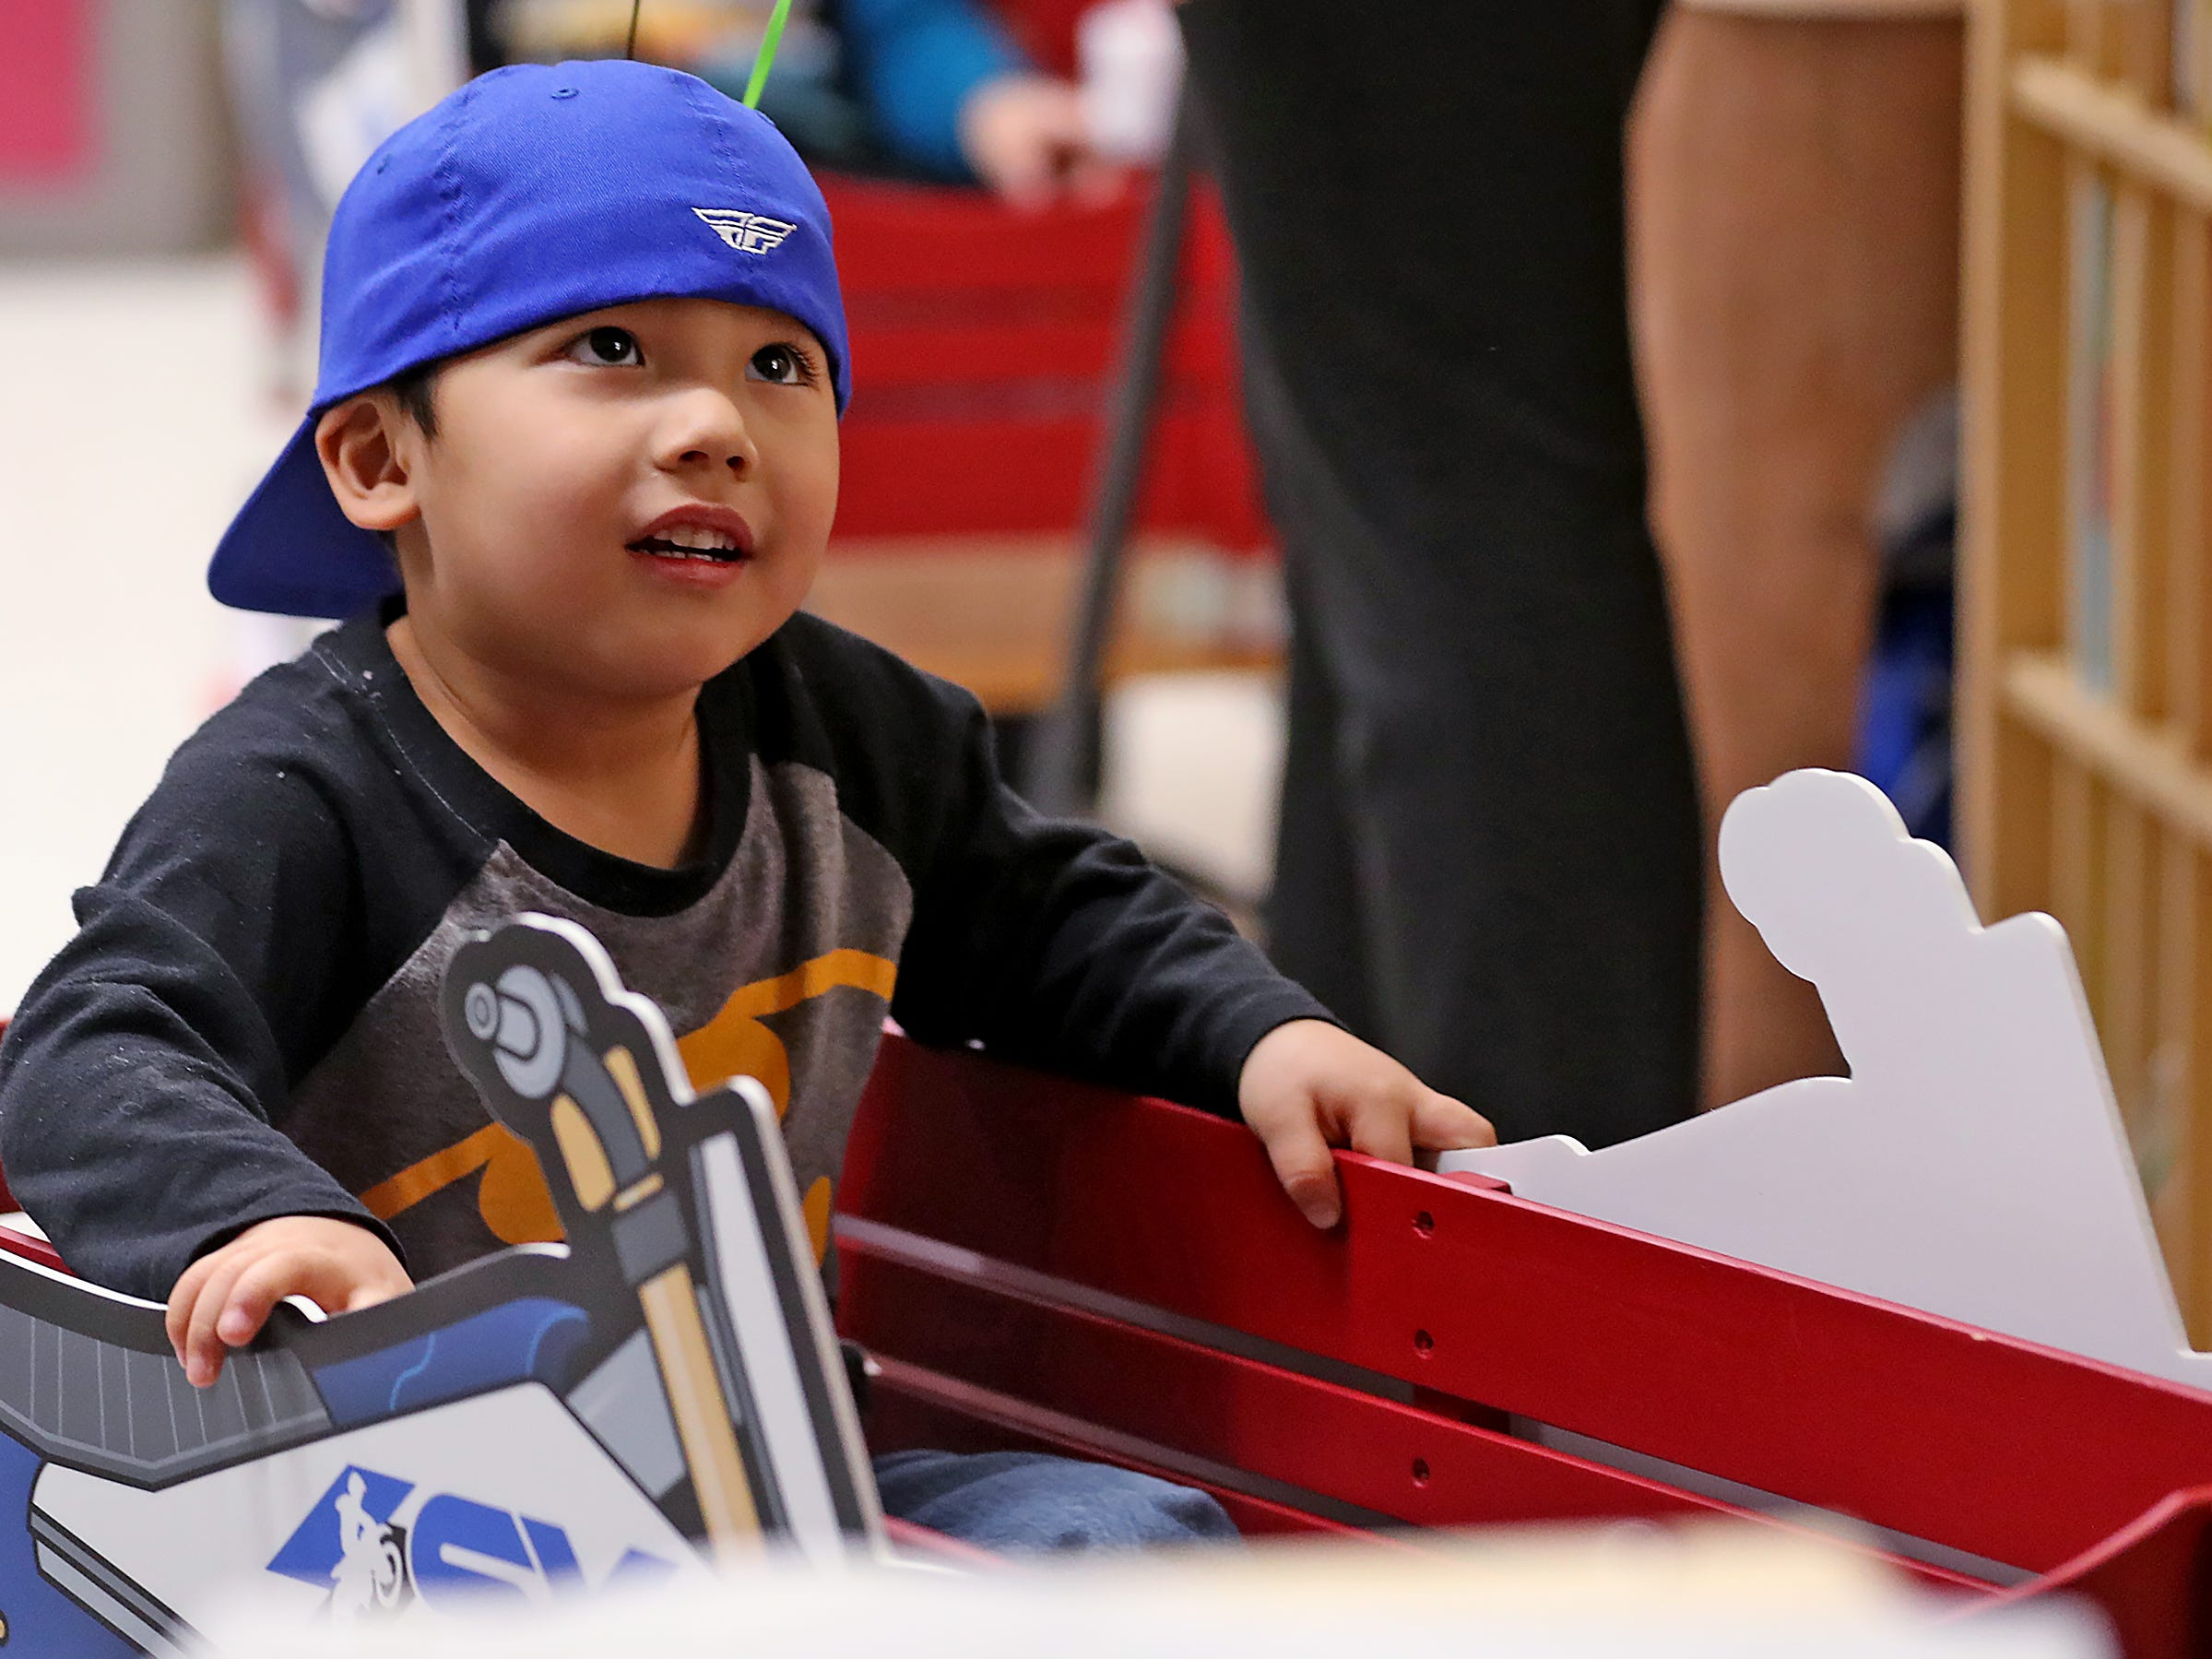 Leo Nguyen gets a wagon ride from Supercross racer Mike Alessi visiting with kids at Day Early Learning Center, Thursday, March 14, 2019.  Alessi provided Supercross rider jerseys and hats for the kids and gave wagon rides, on a break before the upcoming Supercross race.